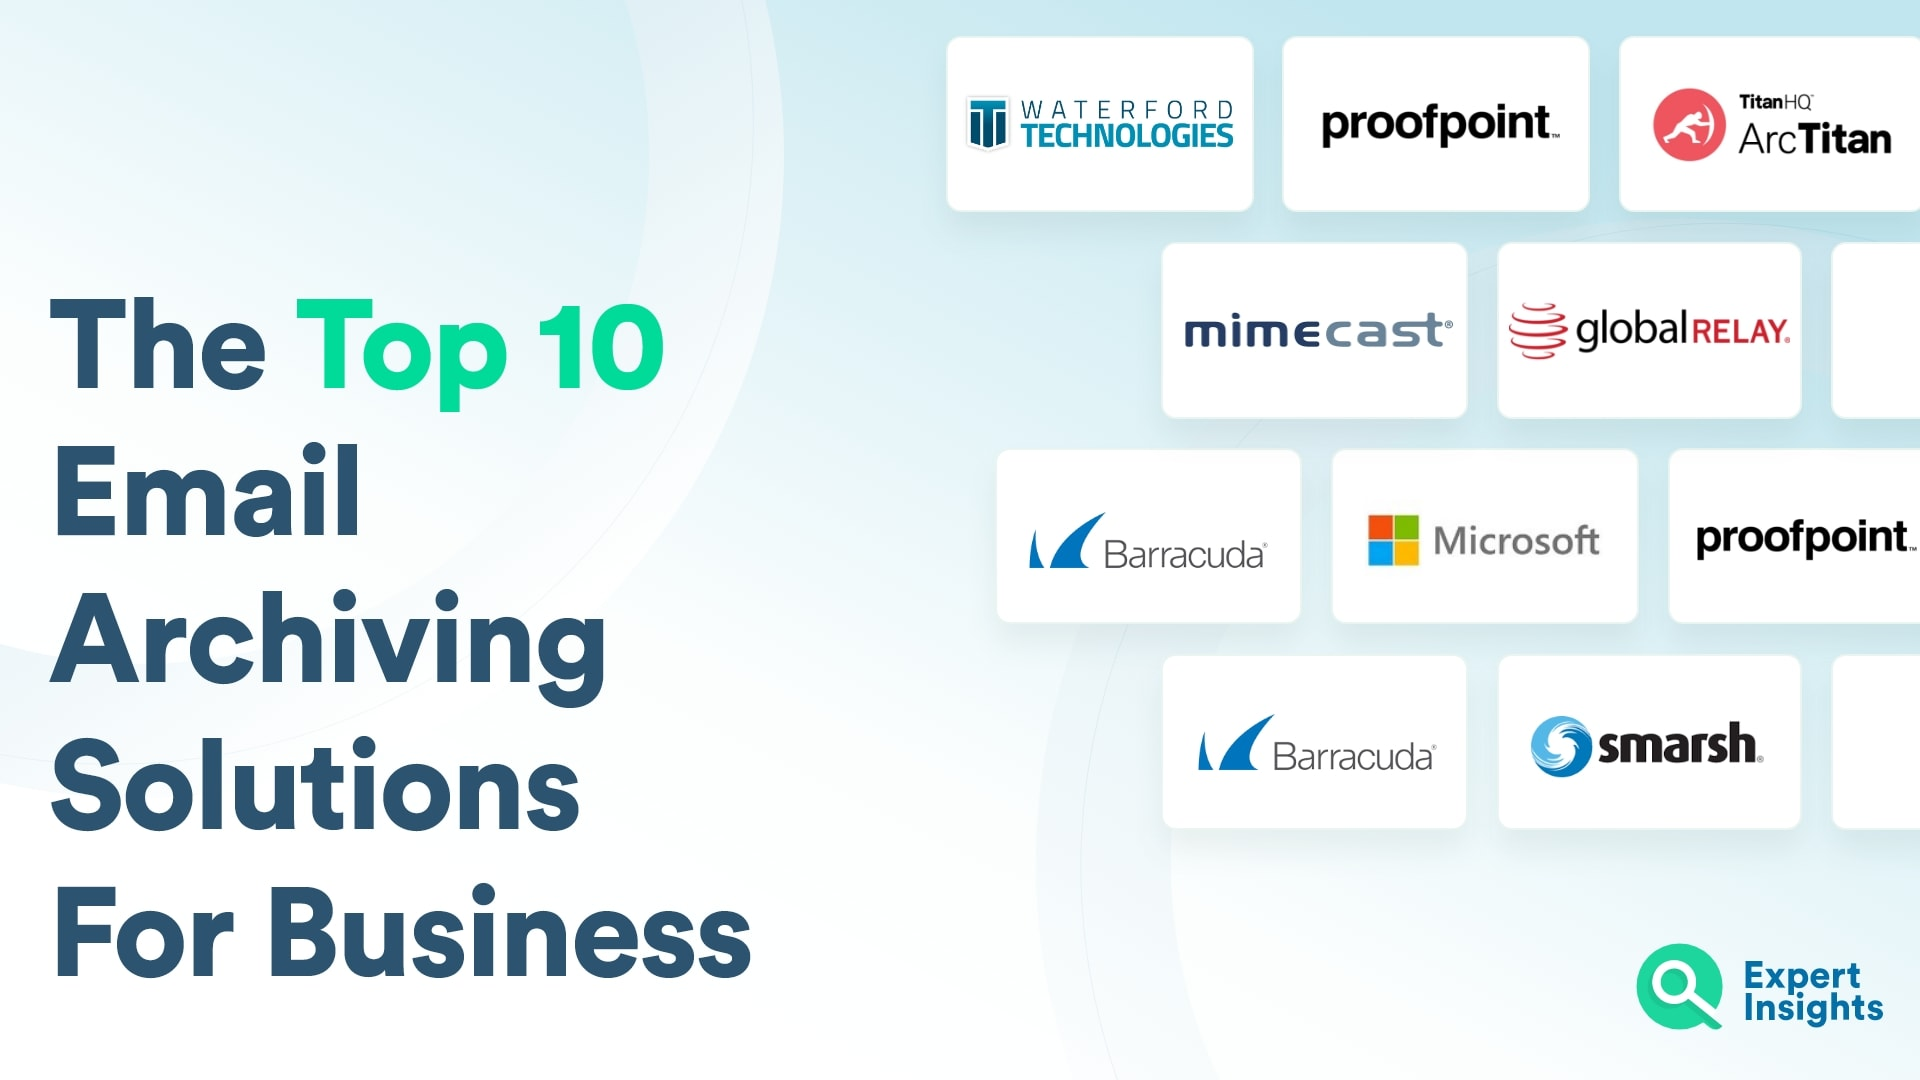 Top 10 Email Archiving Solutions For Business - Expert Insights